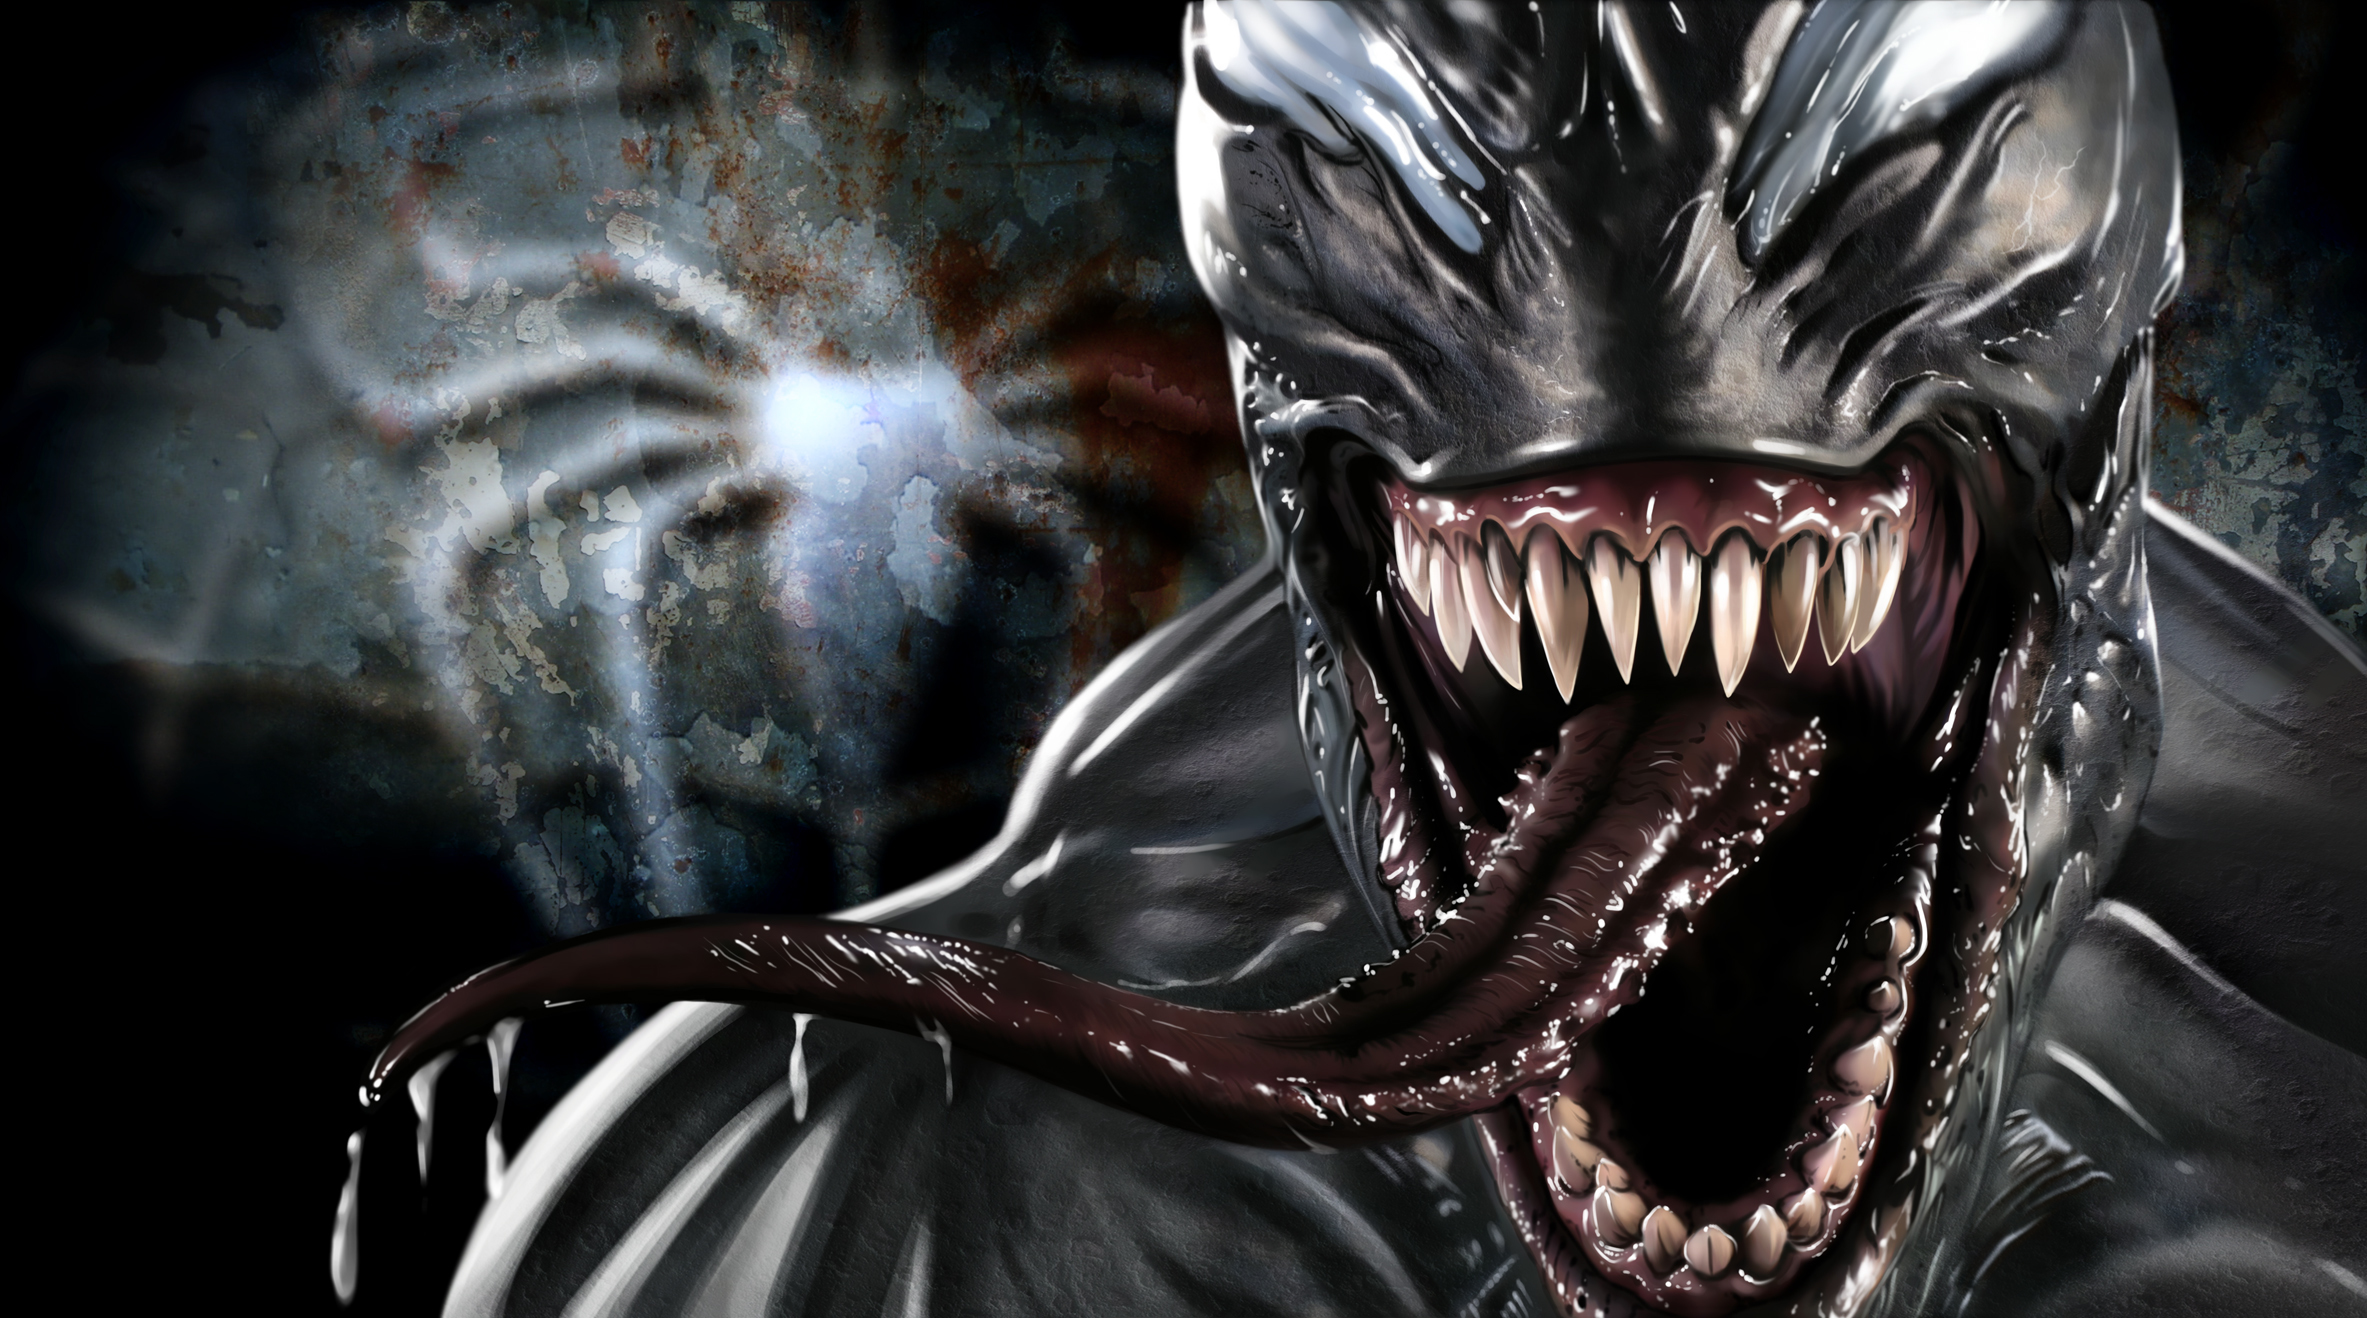 Cara de Venom Wallpaper